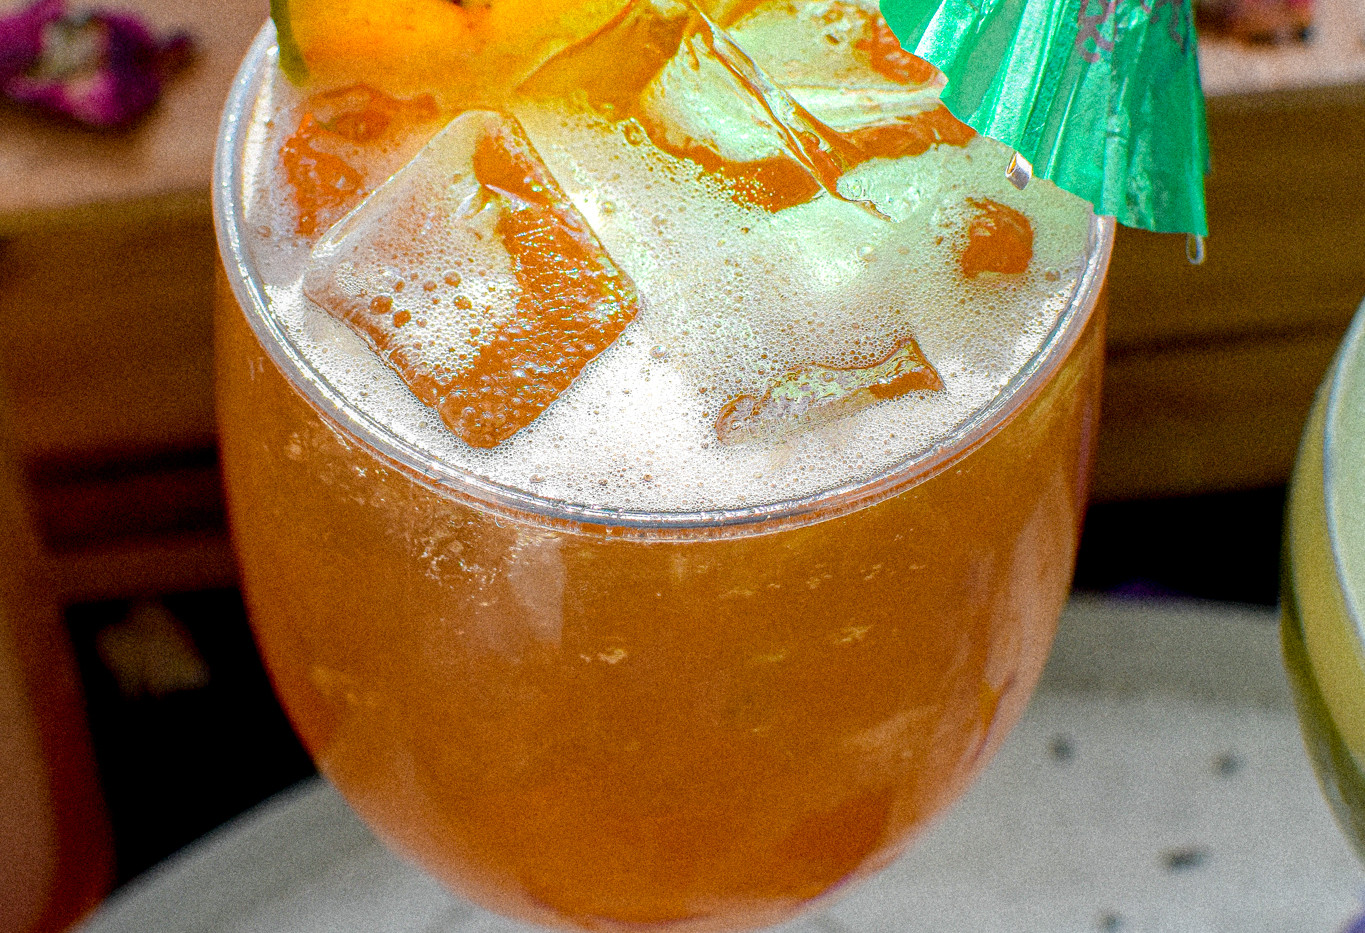 SPECIALTY COCKTAIL